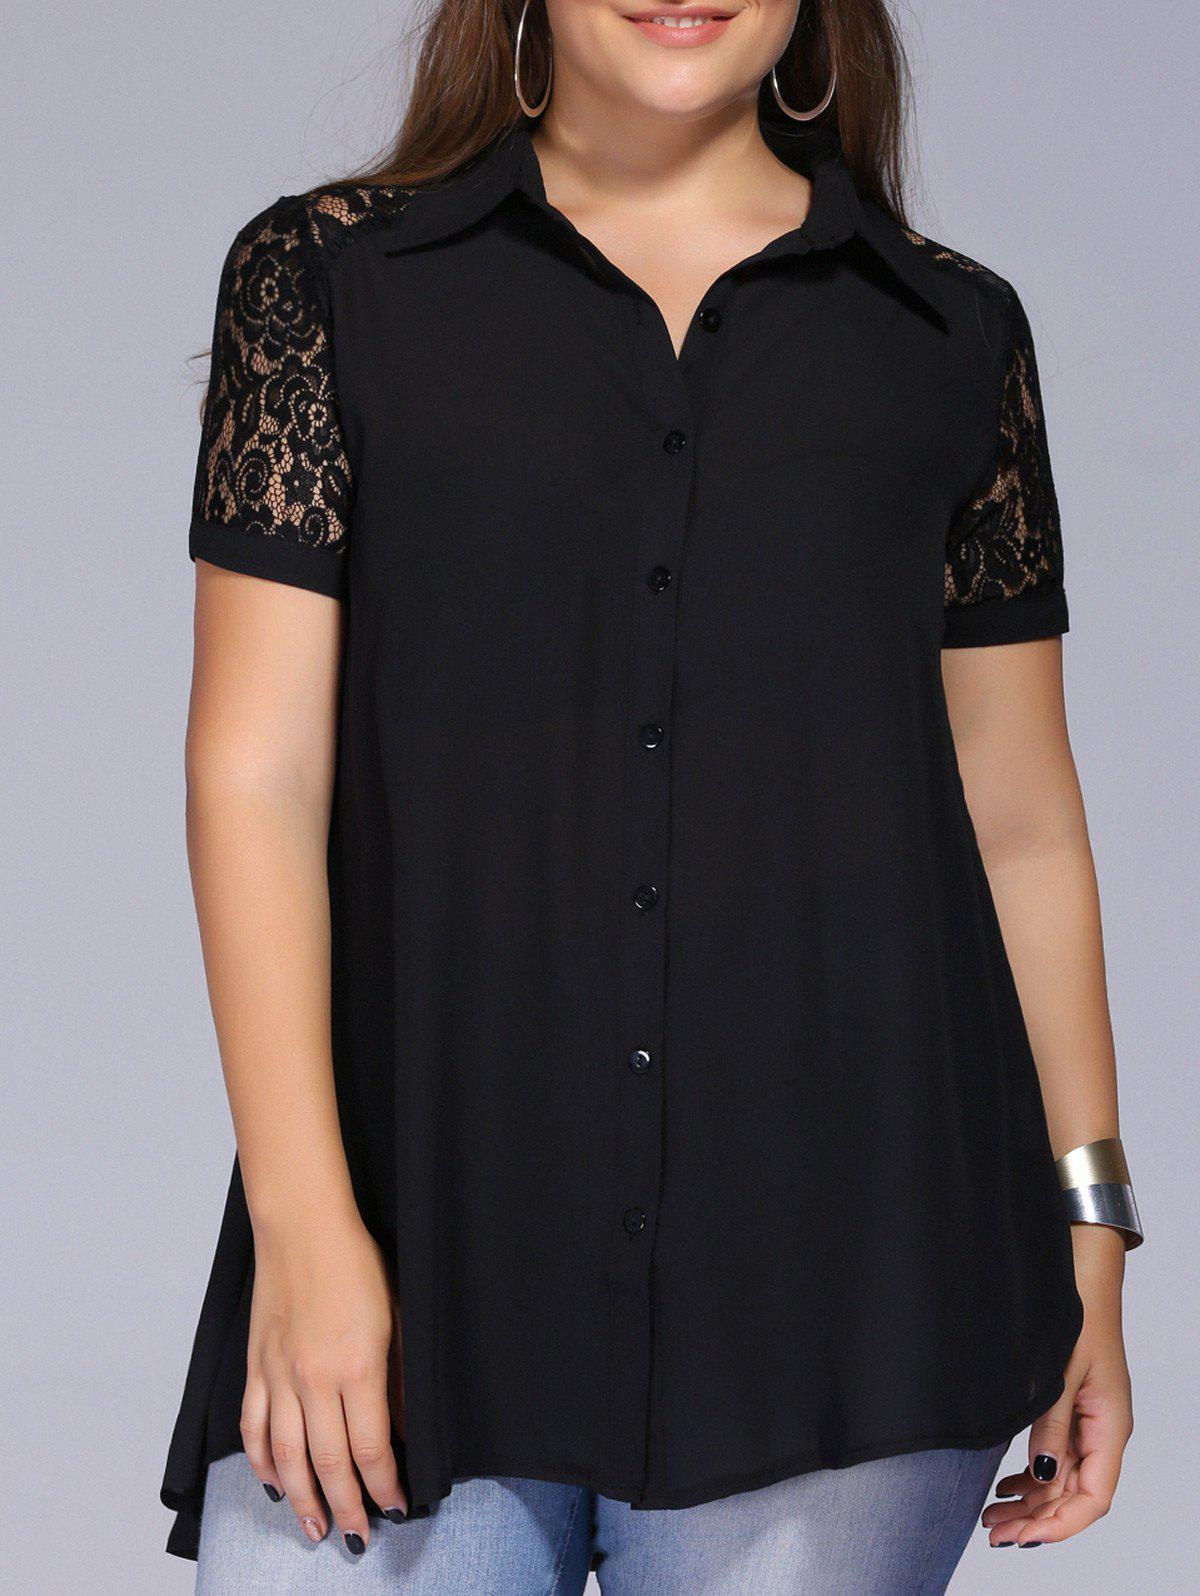 Lace Trim Plus Size Tunic Blouse - BLACK 5XL